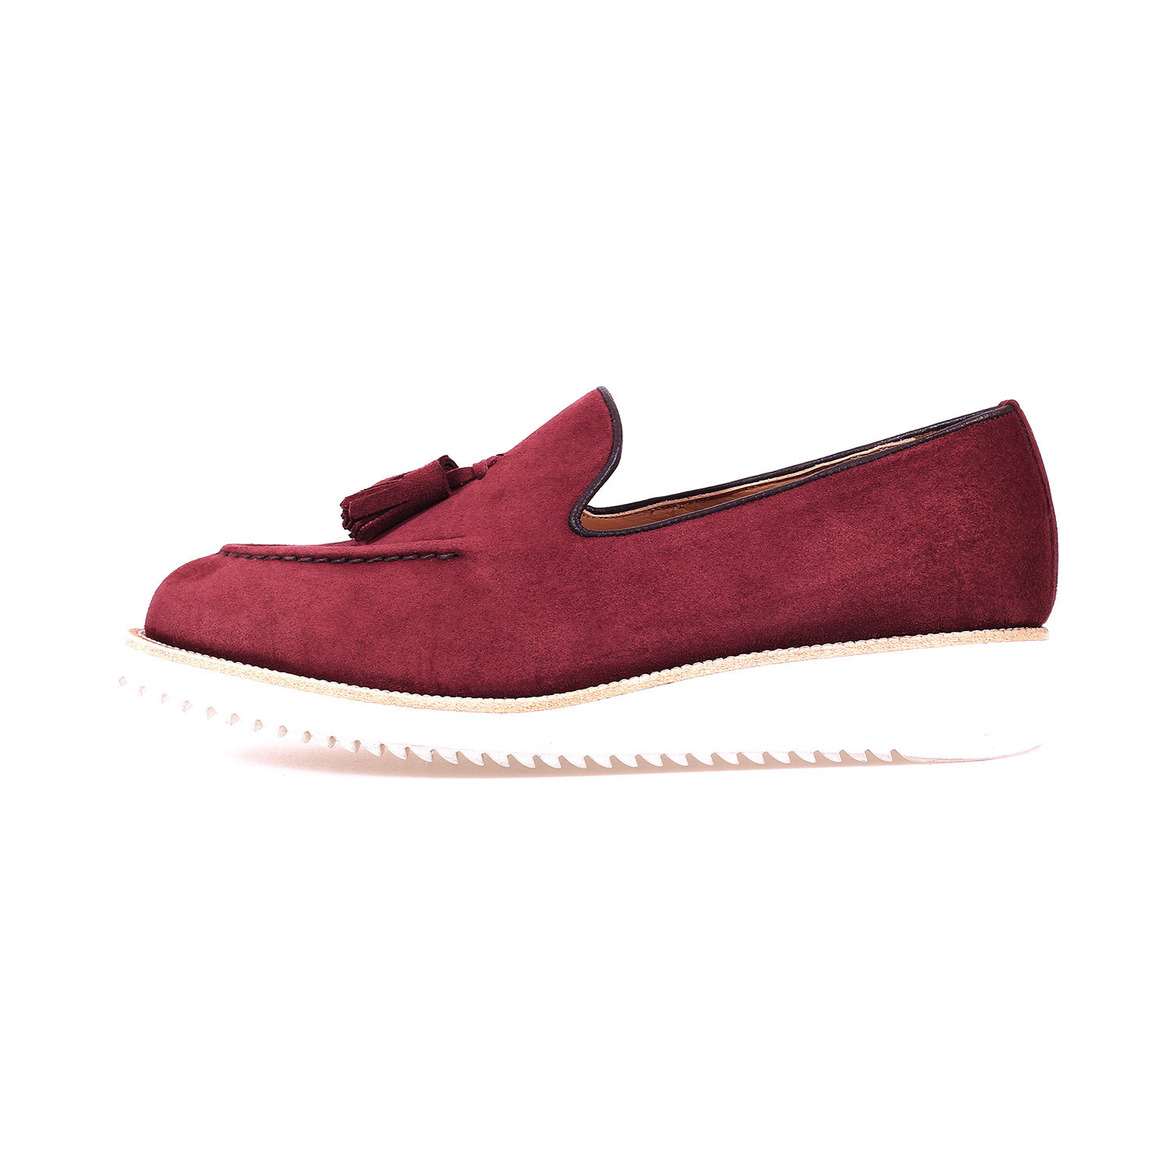 MARCH TASSEL [Burgundy Suede]